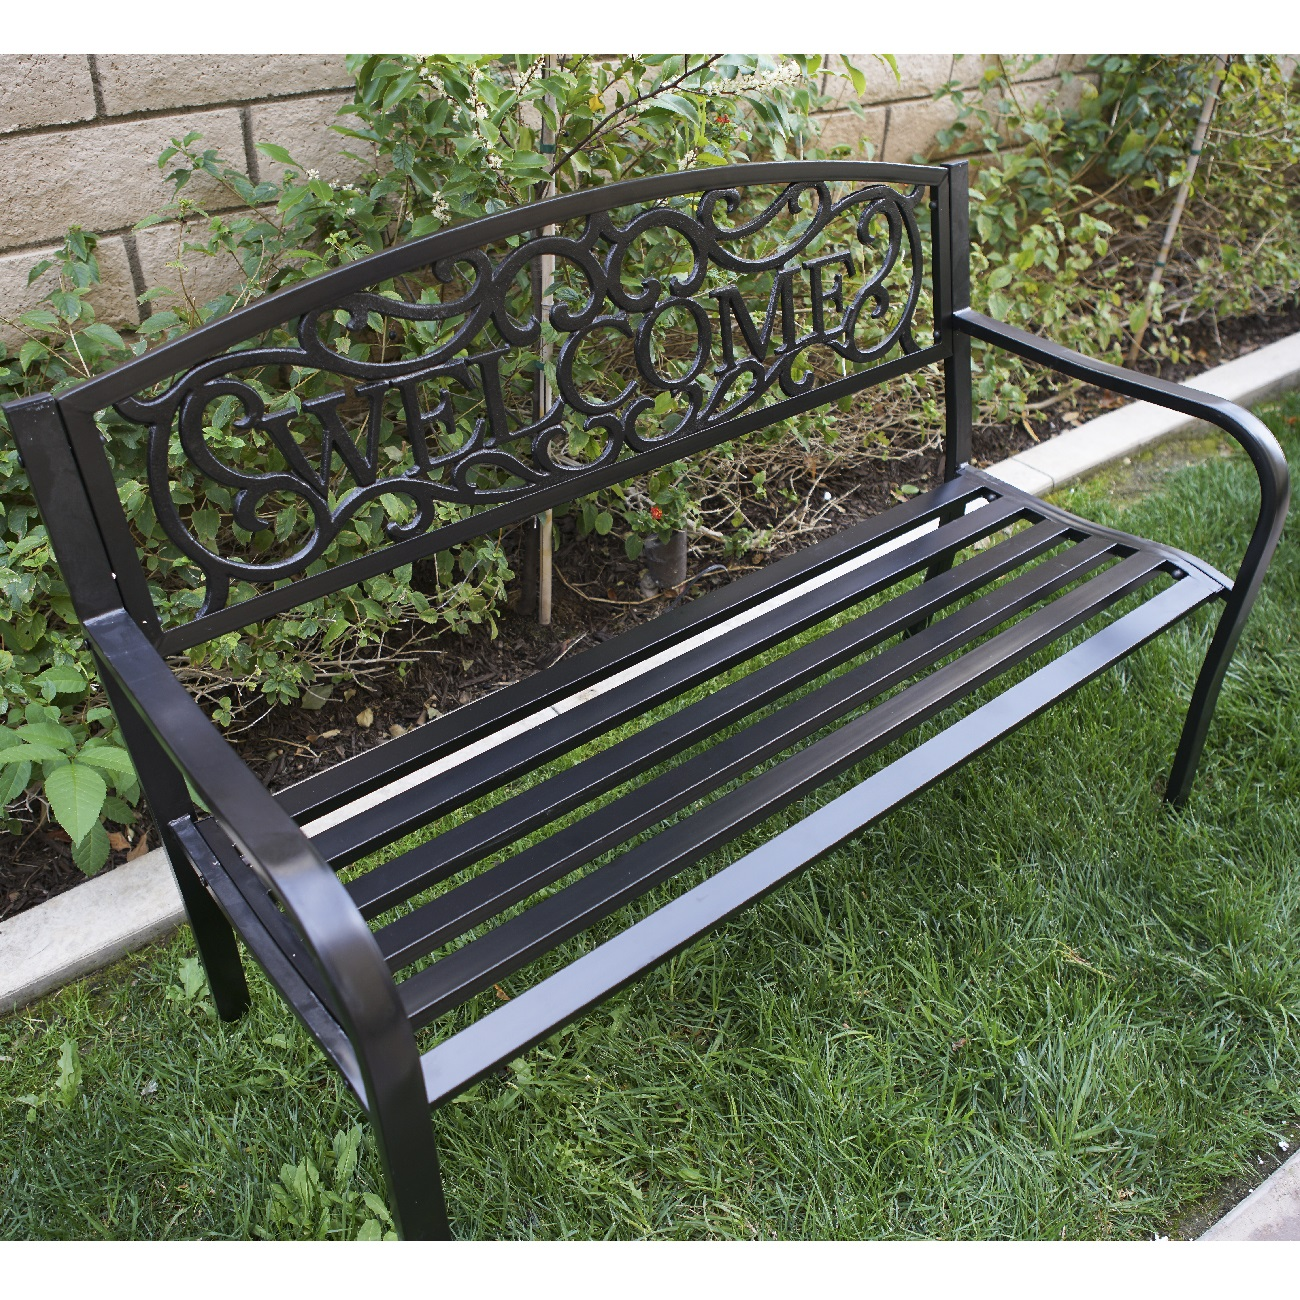 50 Inch Outdoor Patio Bench Furniture Seat Porch Deck Garden Yard Welcome Design Ebay